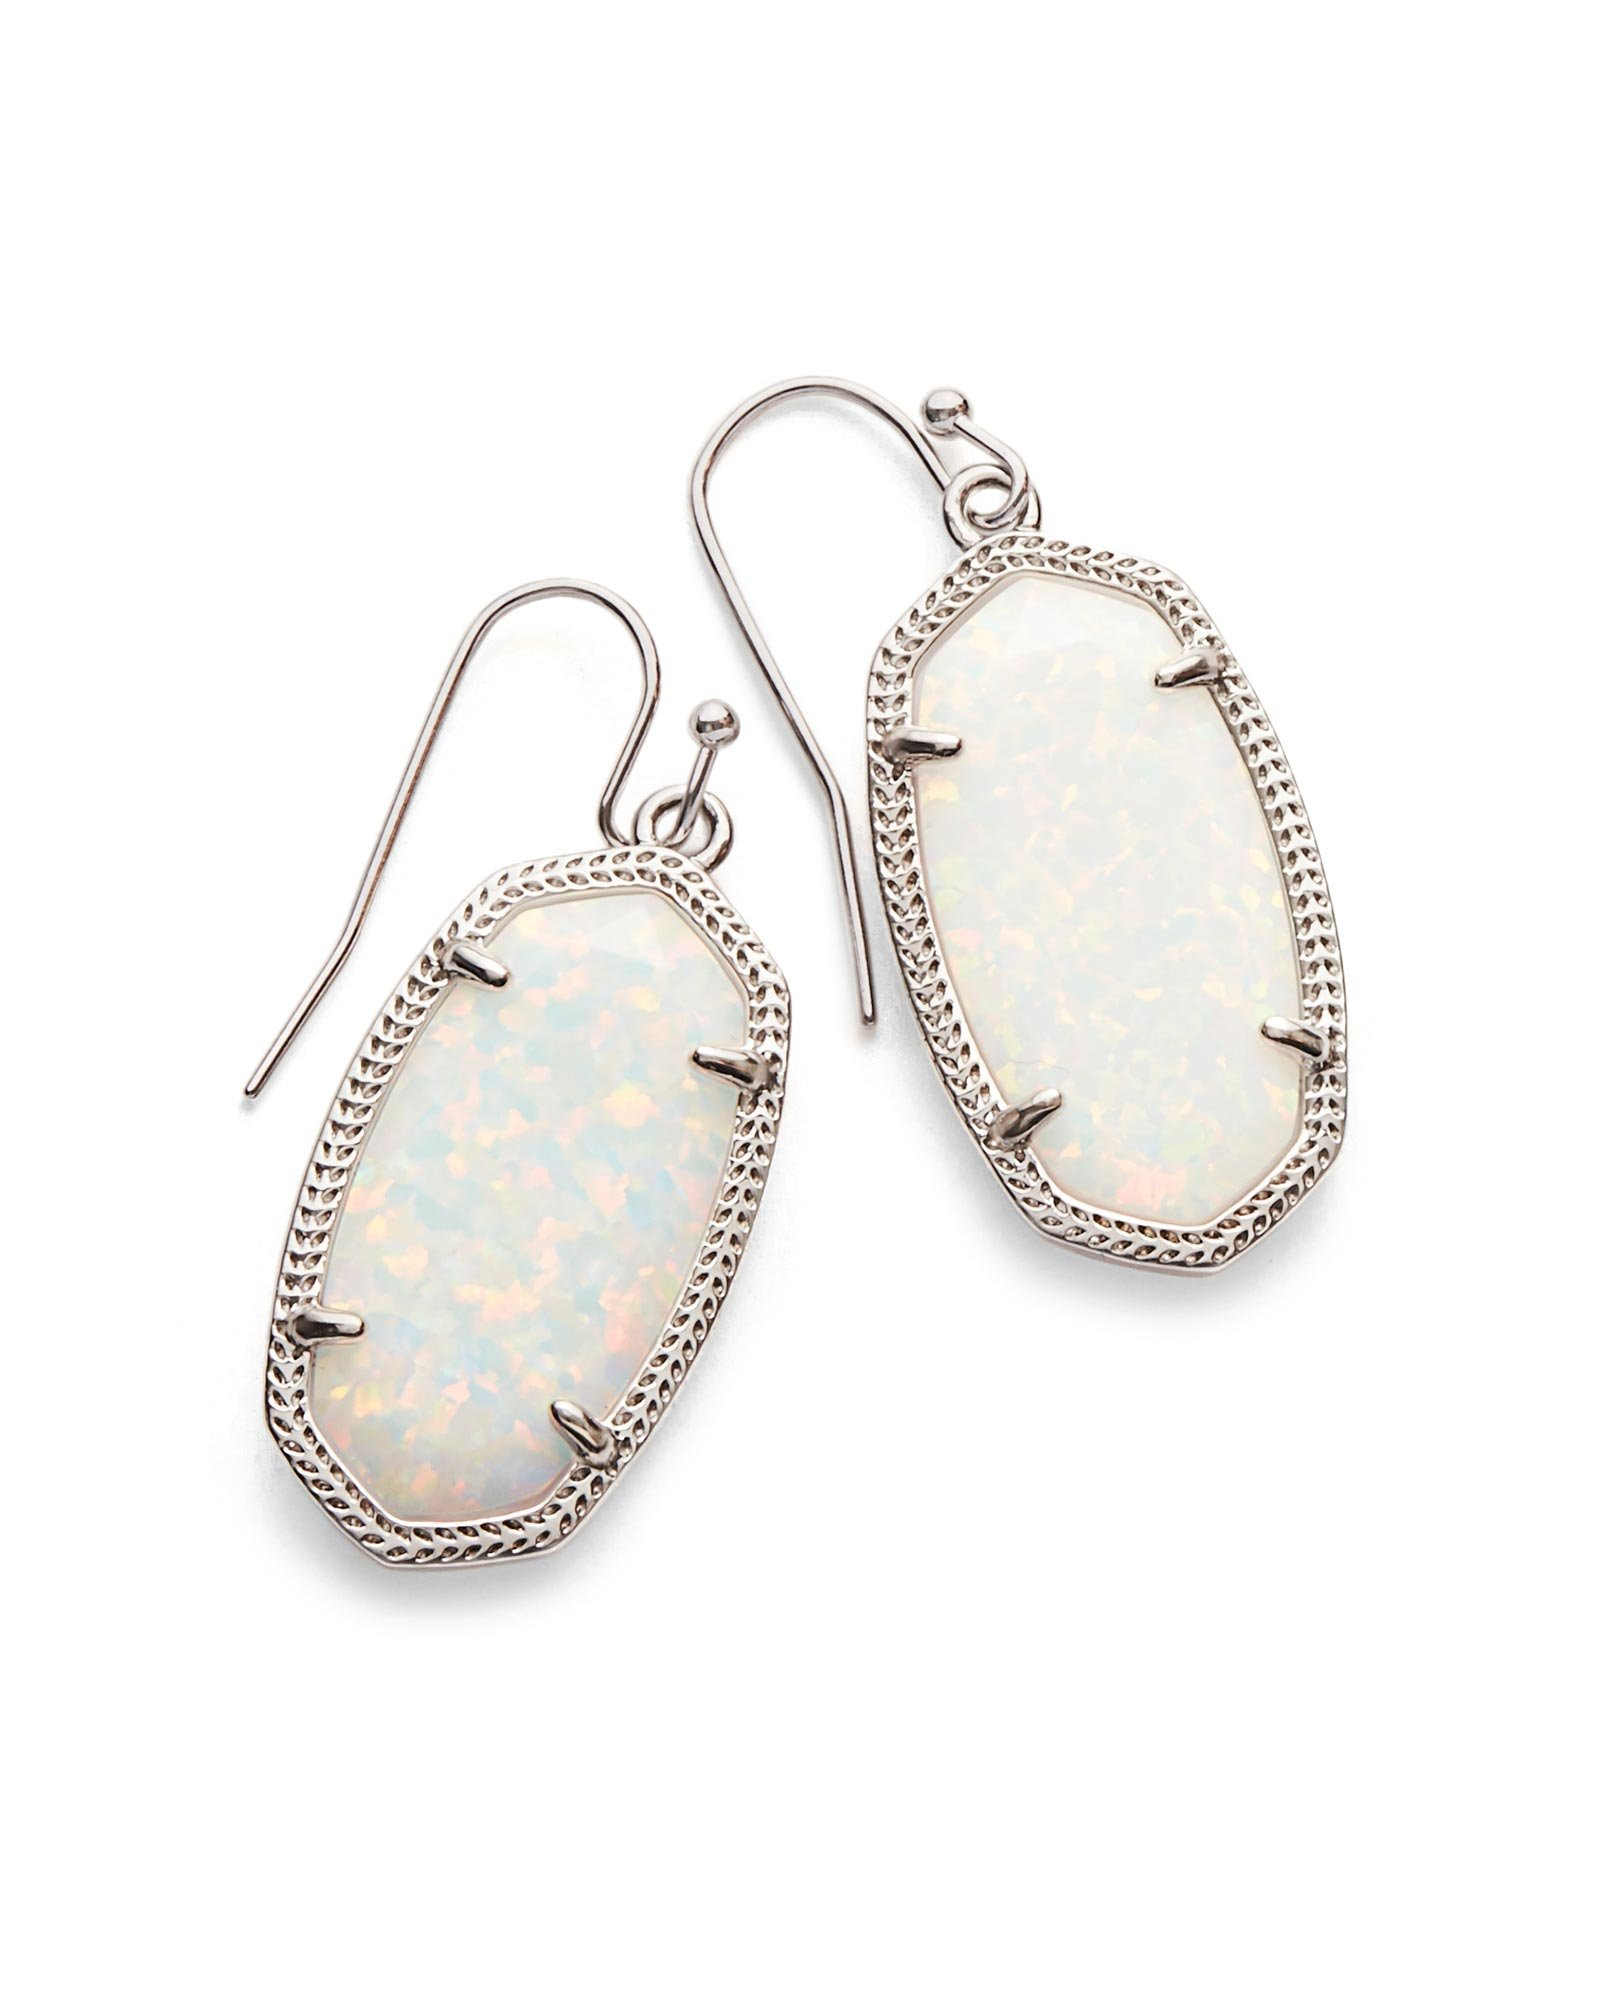 Kendra Scott Signature Dani Earrings in Rhodium Plated and White Kyocera Opal